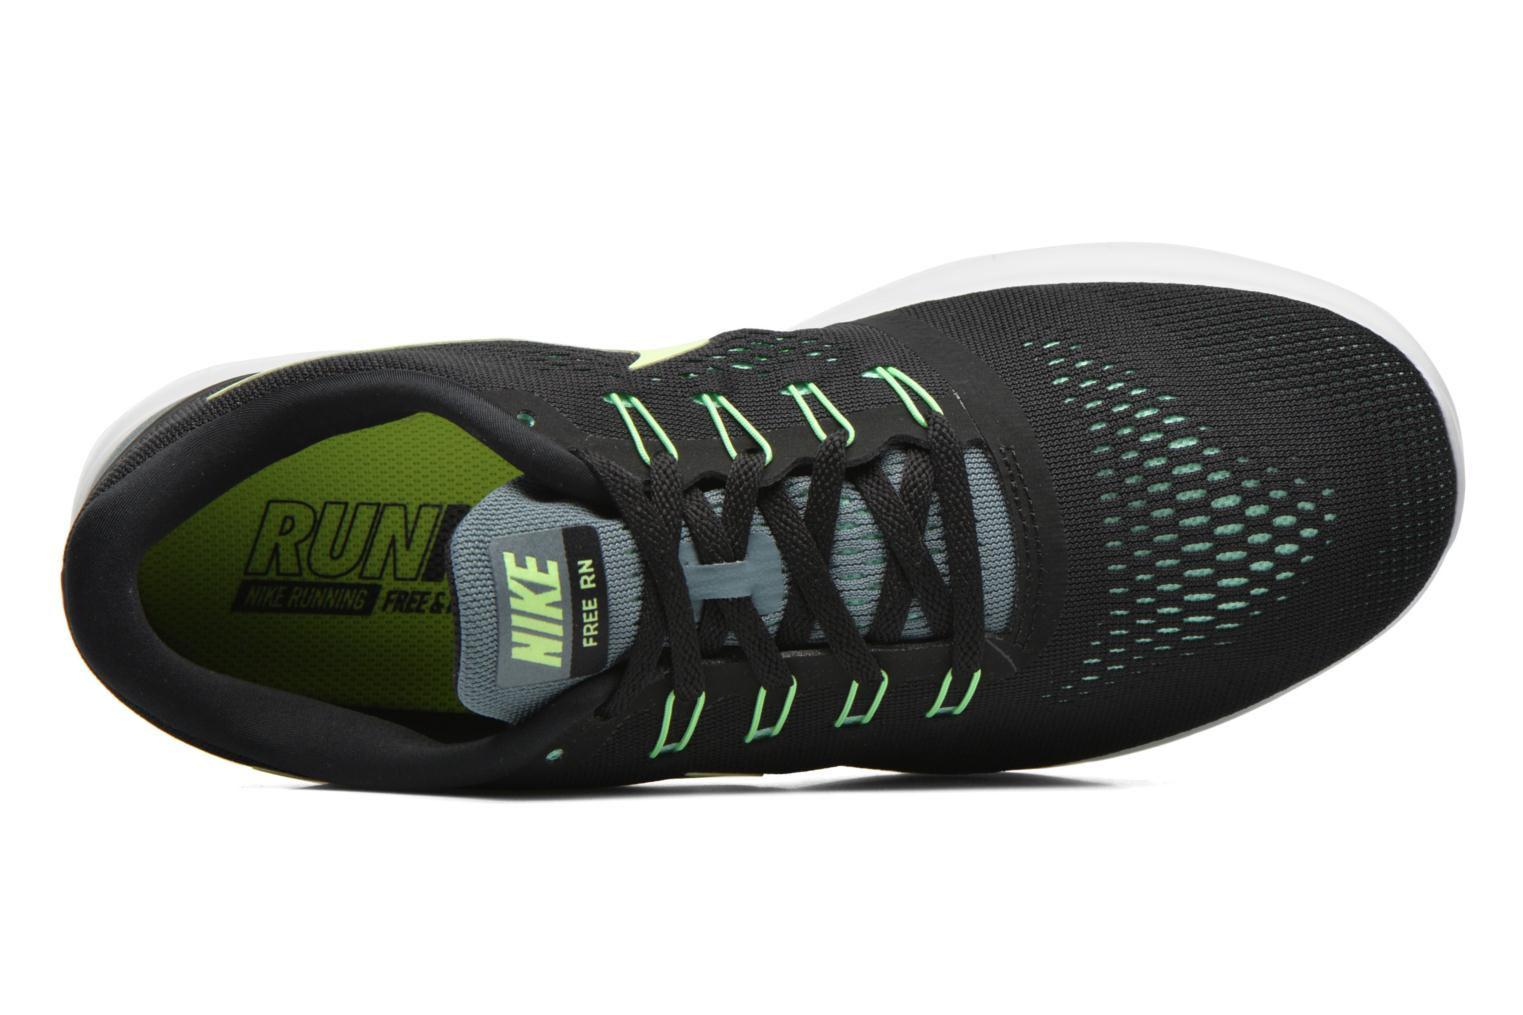 Nike Free Rn Black/Ghost Green-Hasta-Green Glow